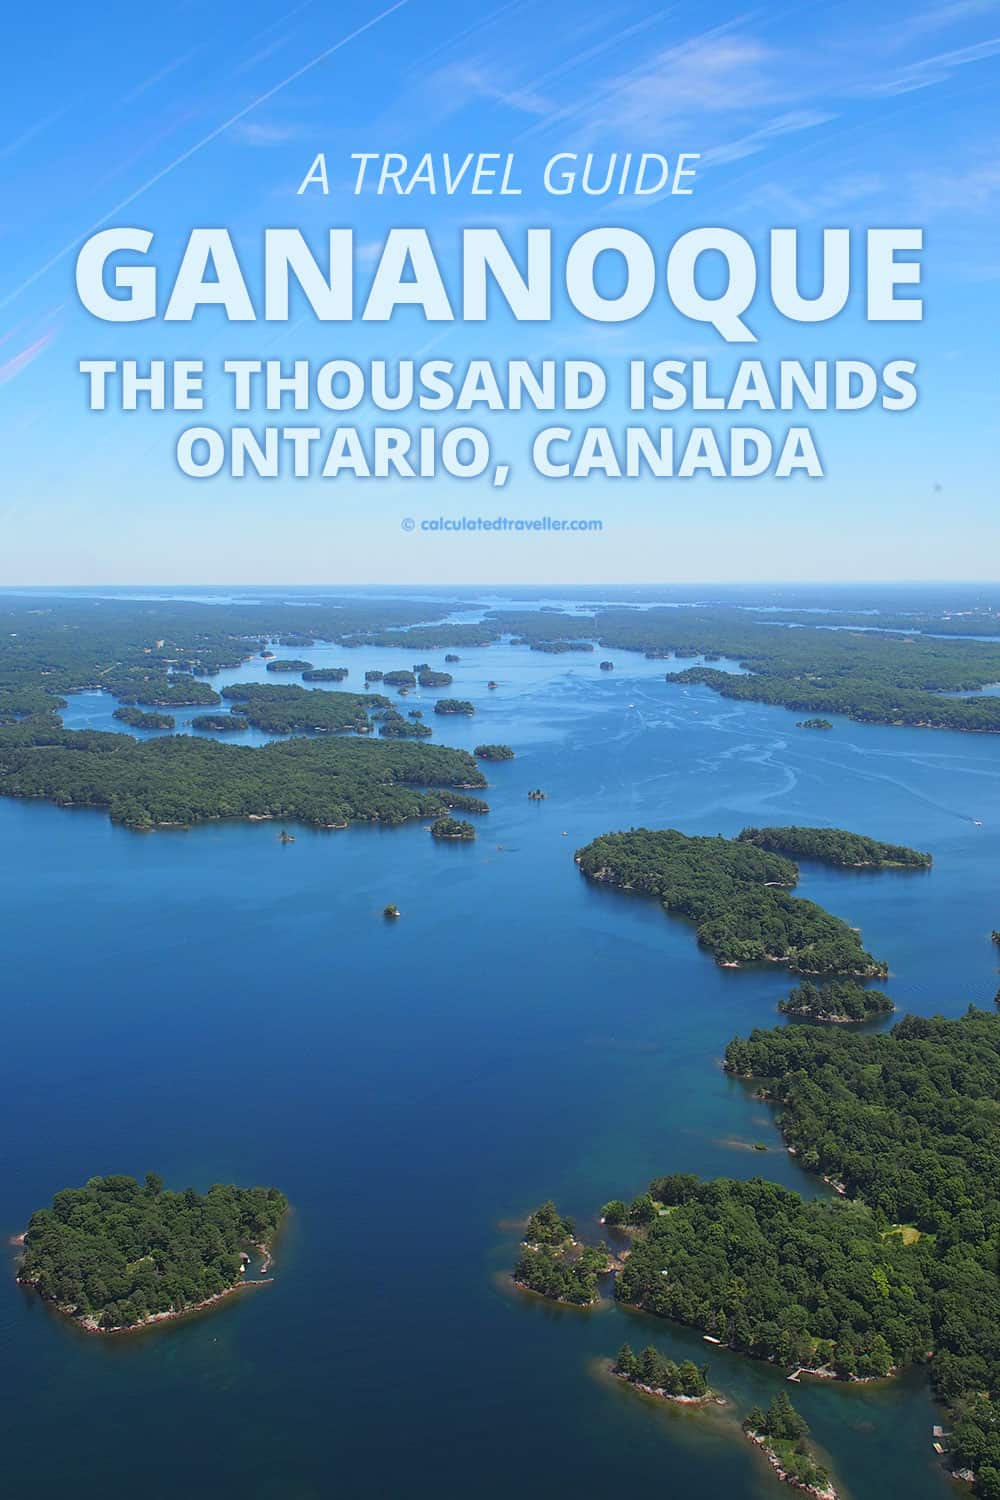 A Travel Guide to Gananoque and the Thousand Islands Ontario, Canada | #Gananoque #Thousand #Islands #1000 #Ontario #travel #guide #tips #tours #see #eat #do #shop